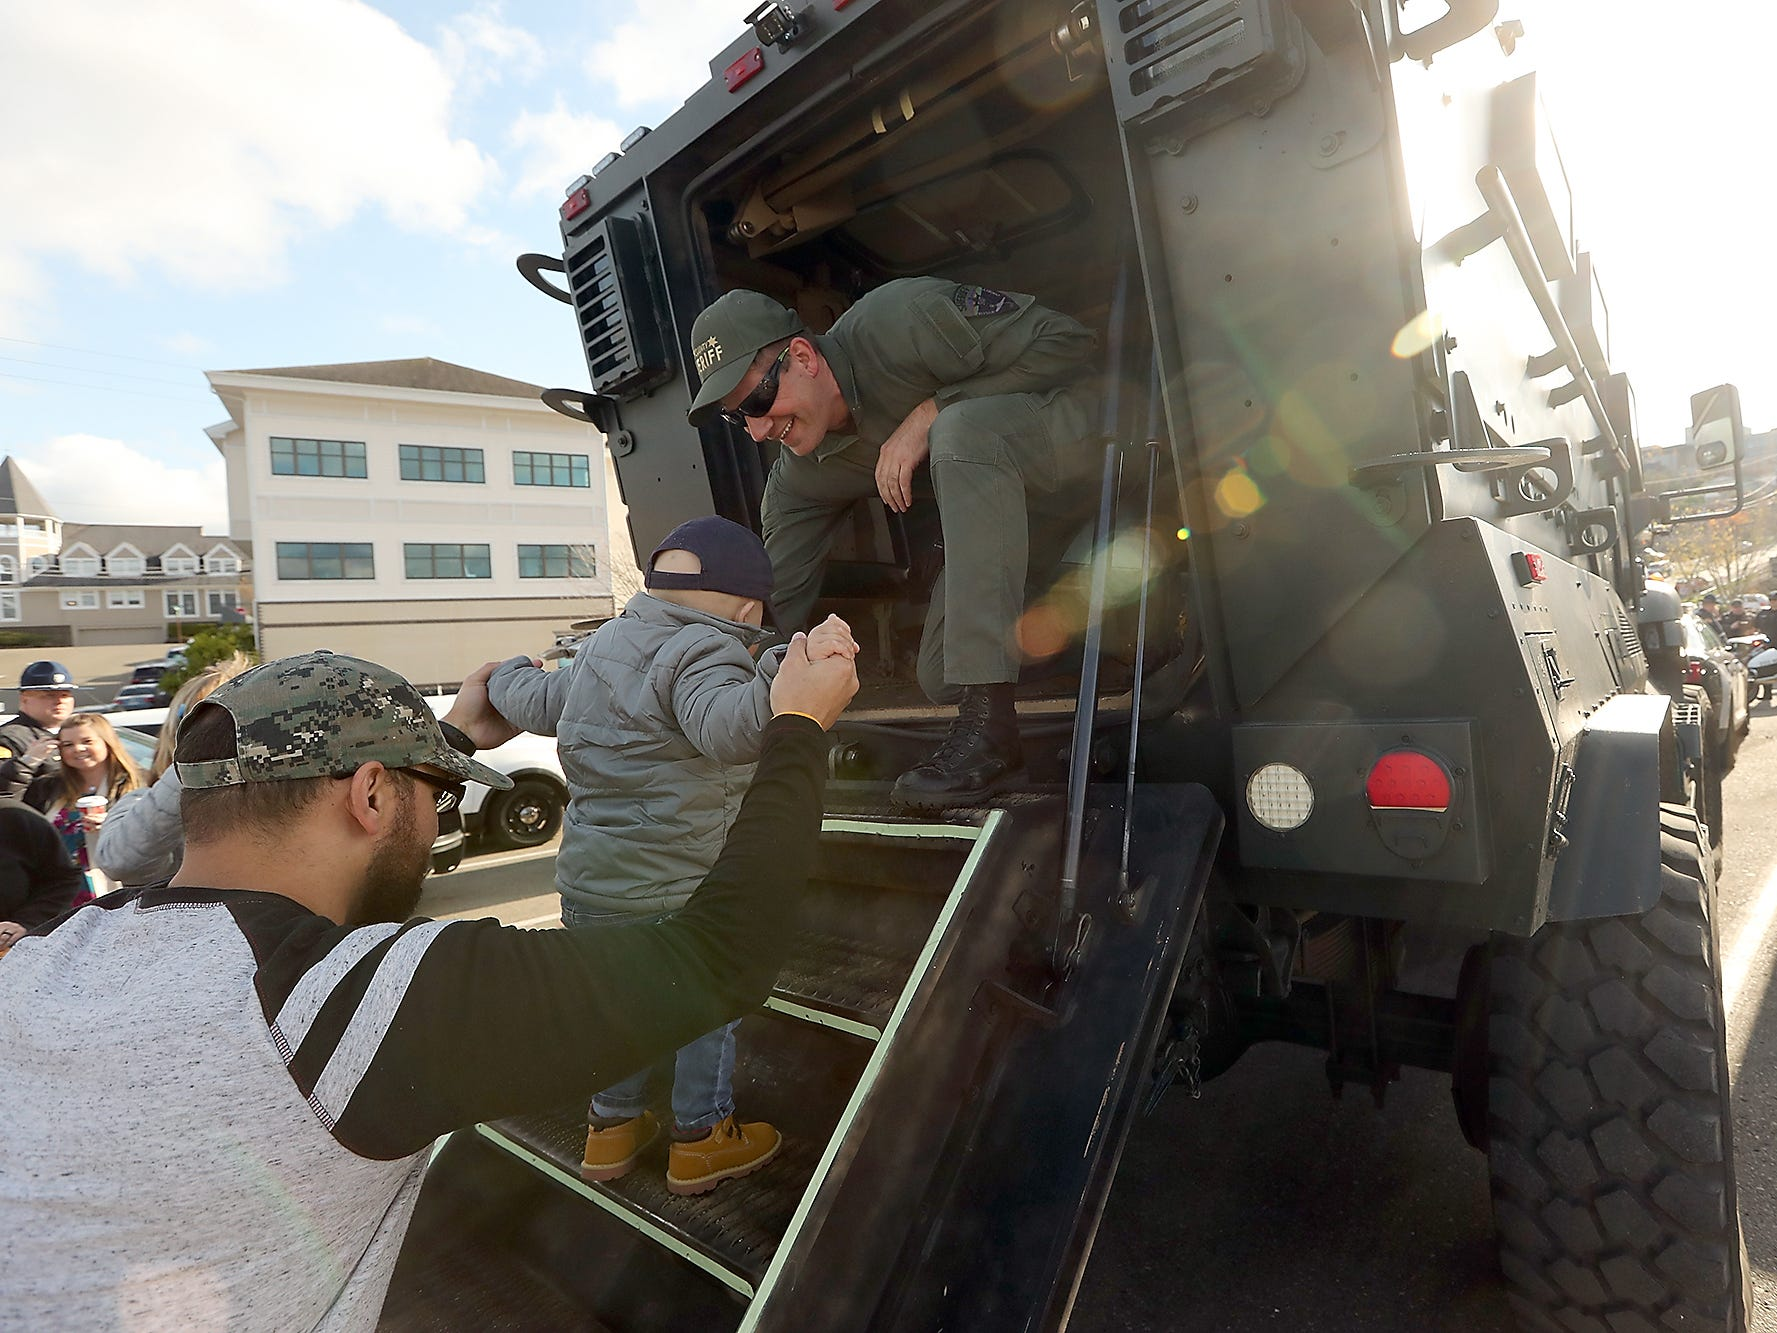 Kitsap County Sheriff's Sgt. Kurtis Lont (right) helps guide Jedi Minter, 3, and his father Jason up the stairs to tour the inside of an armored rescue vehicle at the Port of Bremerton boat launch in Port Orchard on Wednesday, November 7, 2018.